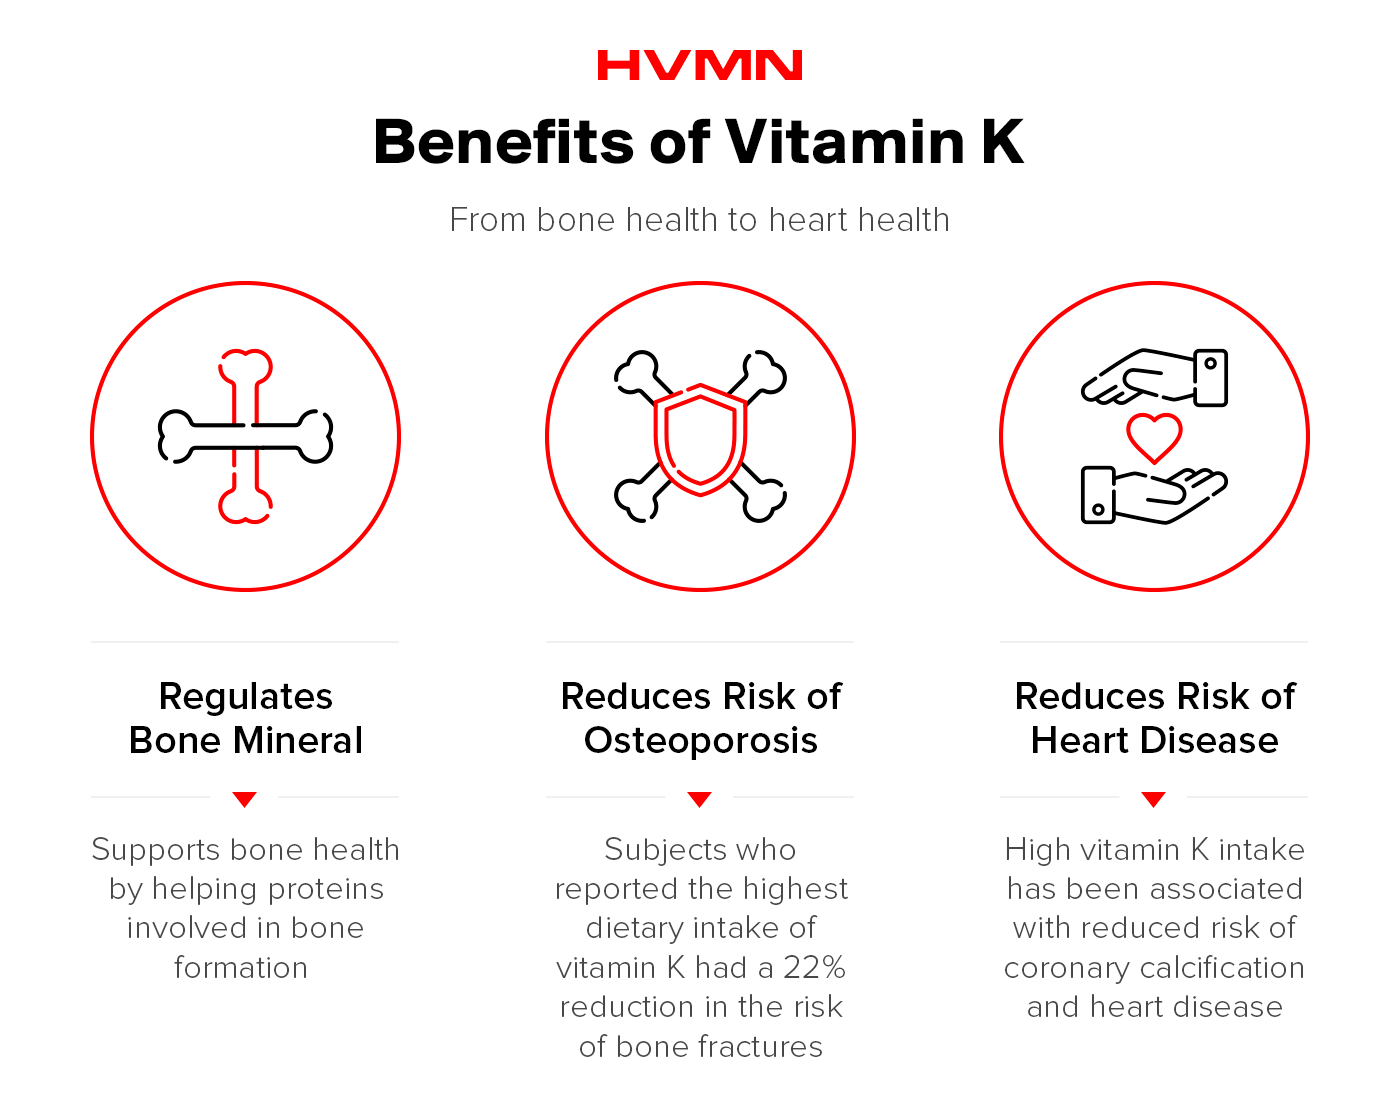 An illustration of bones, a shield and hands holding a heart showing all the benefits of vitamin K